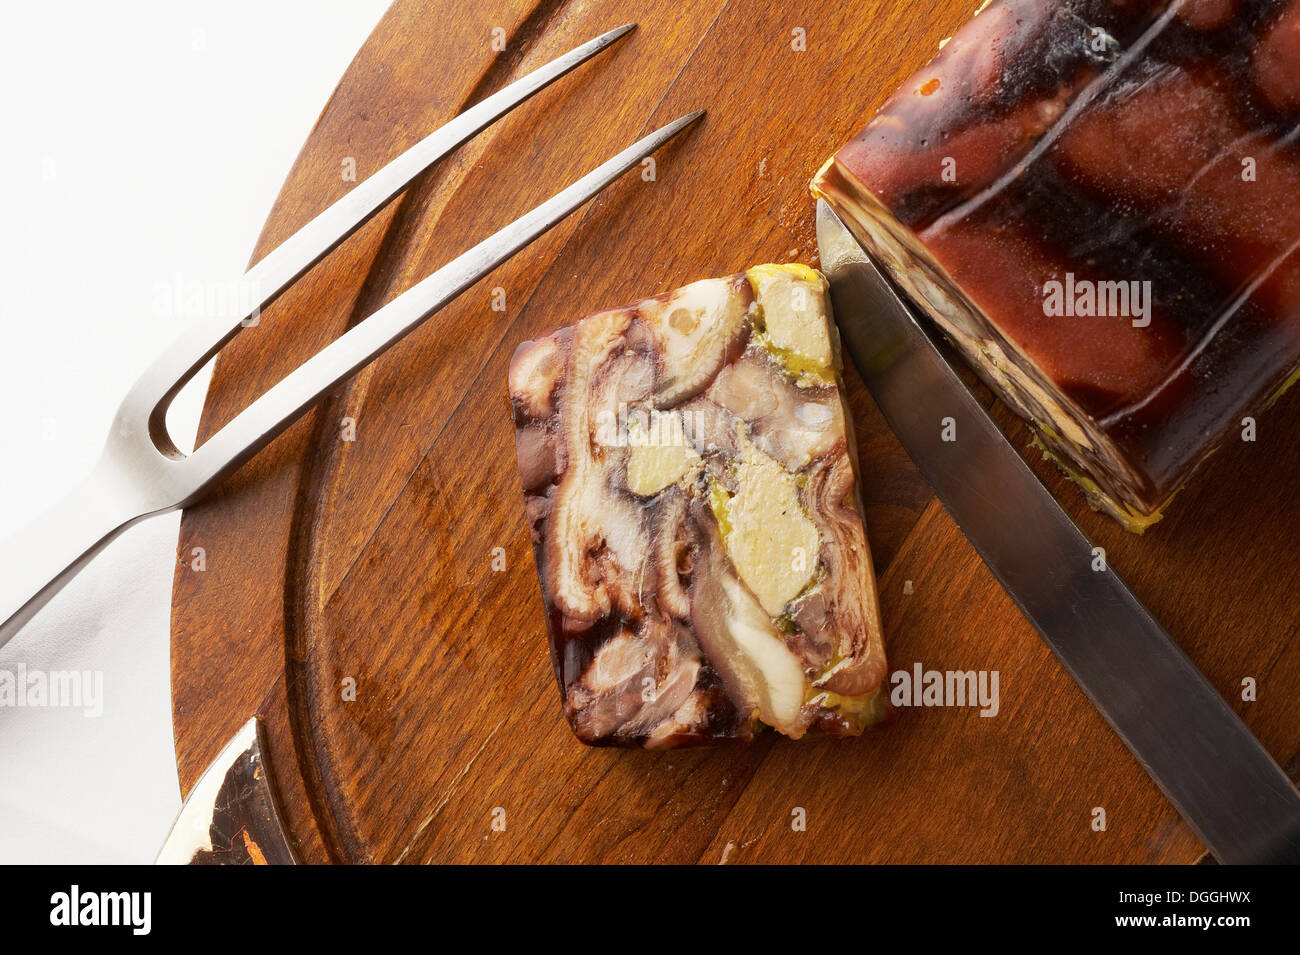 Still life with chopping board and sliced savory roulade - Stock Image